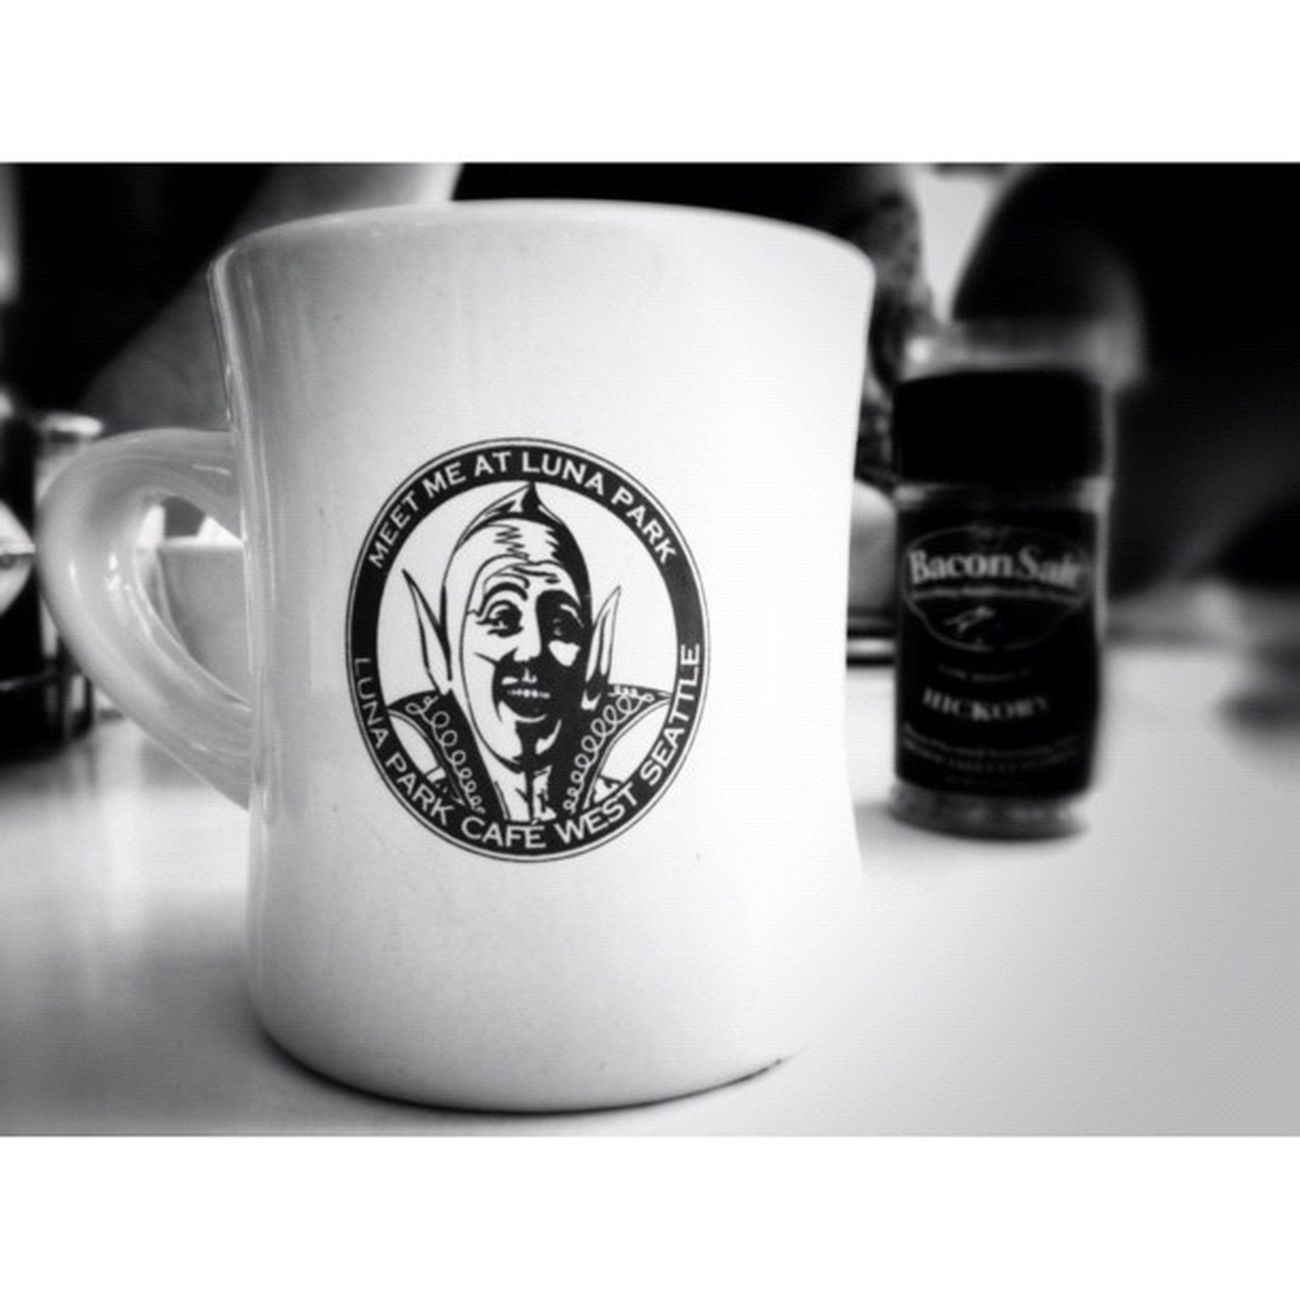 Lunapark Cafe Coffee Cup mug seattle igers_seattle bw